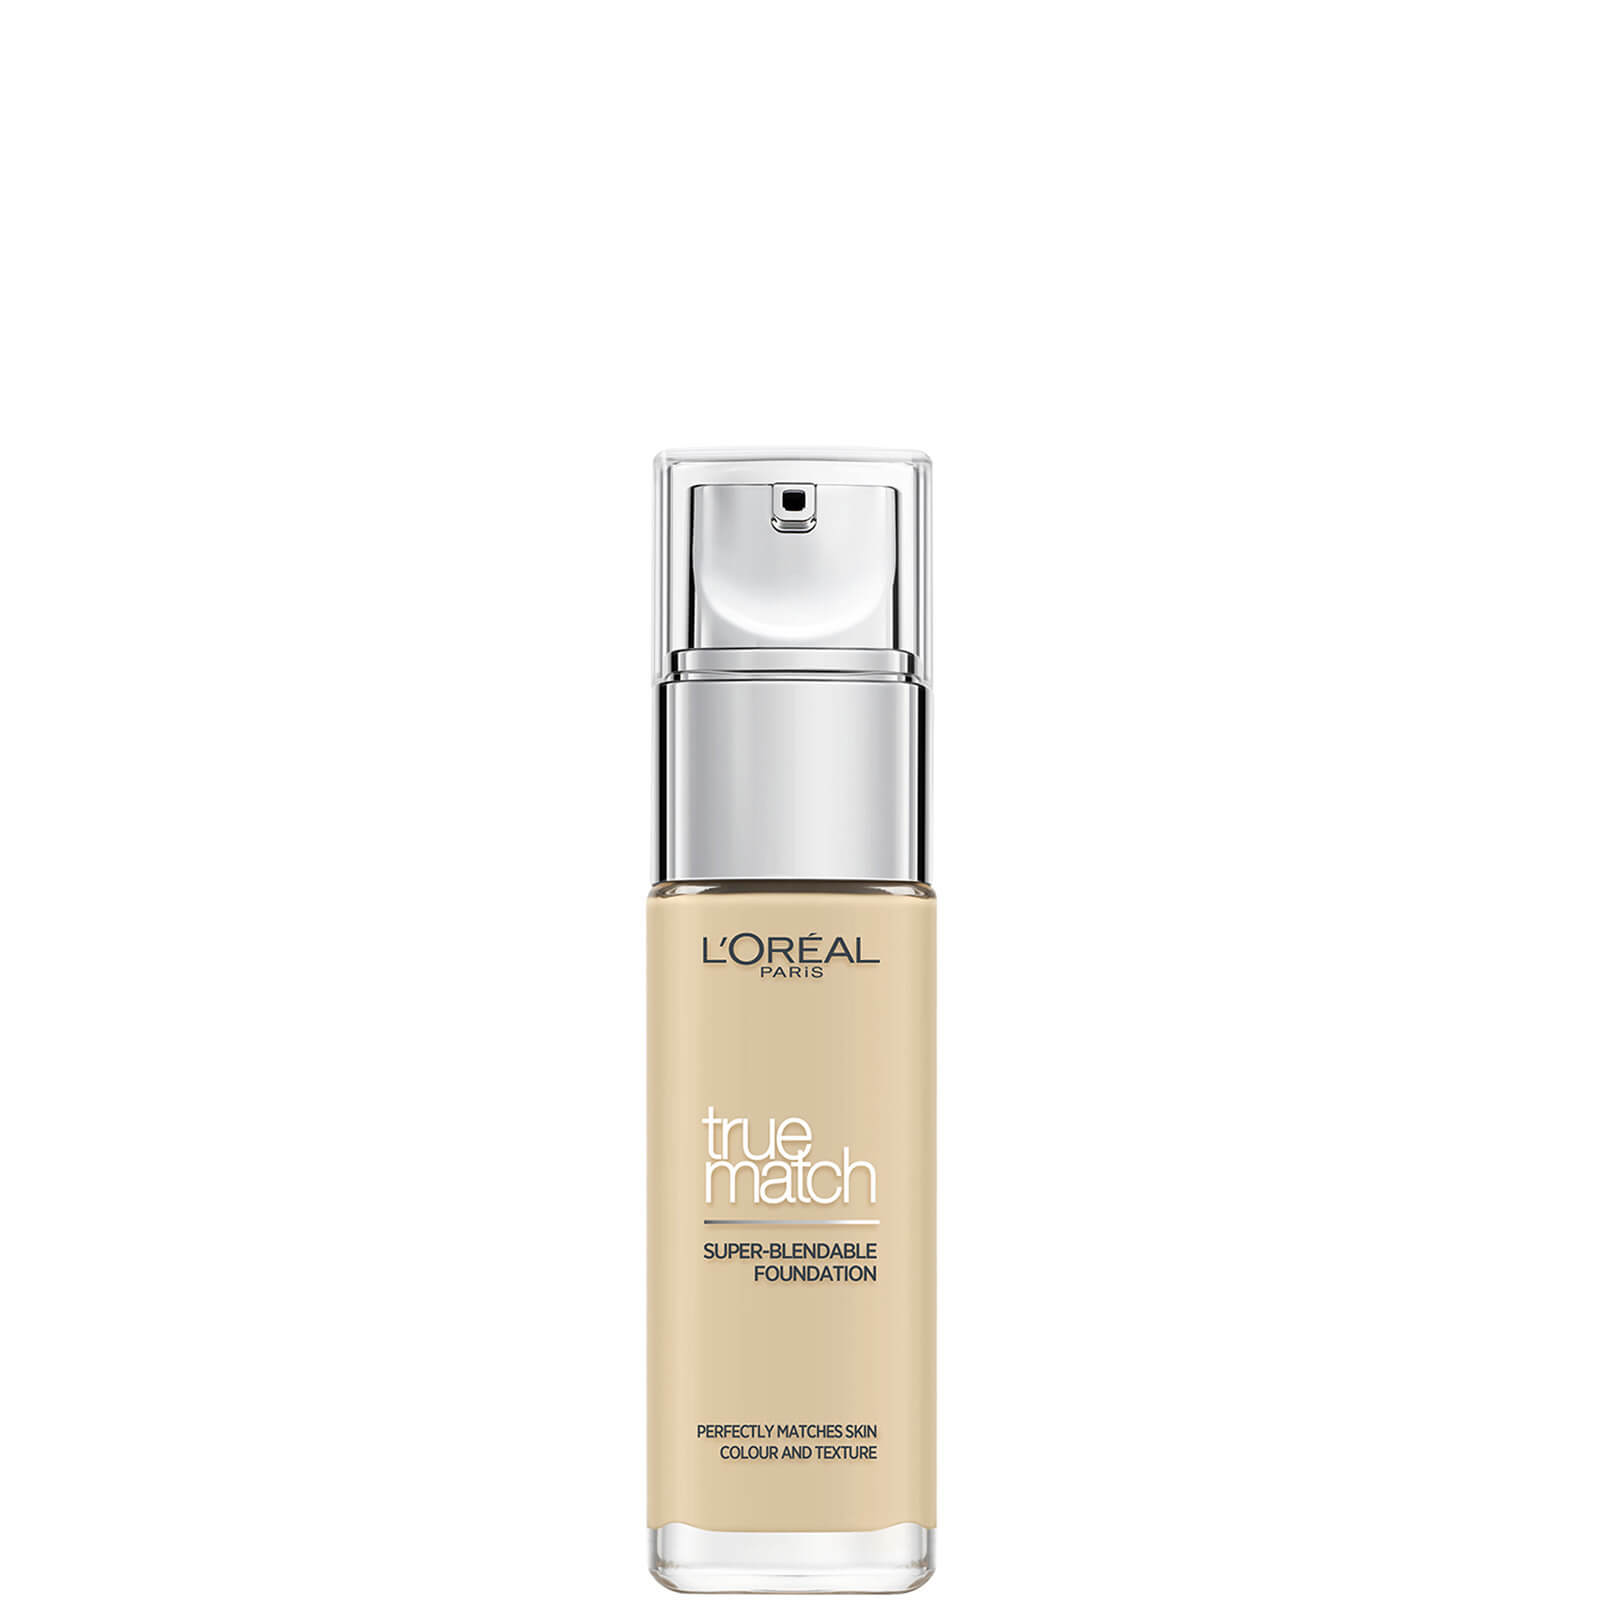 L'Oréal Paris True Match Liquid Foundation with SPF and Hyaluronic Acid 30ml (Various Shades) - Golden Ivory